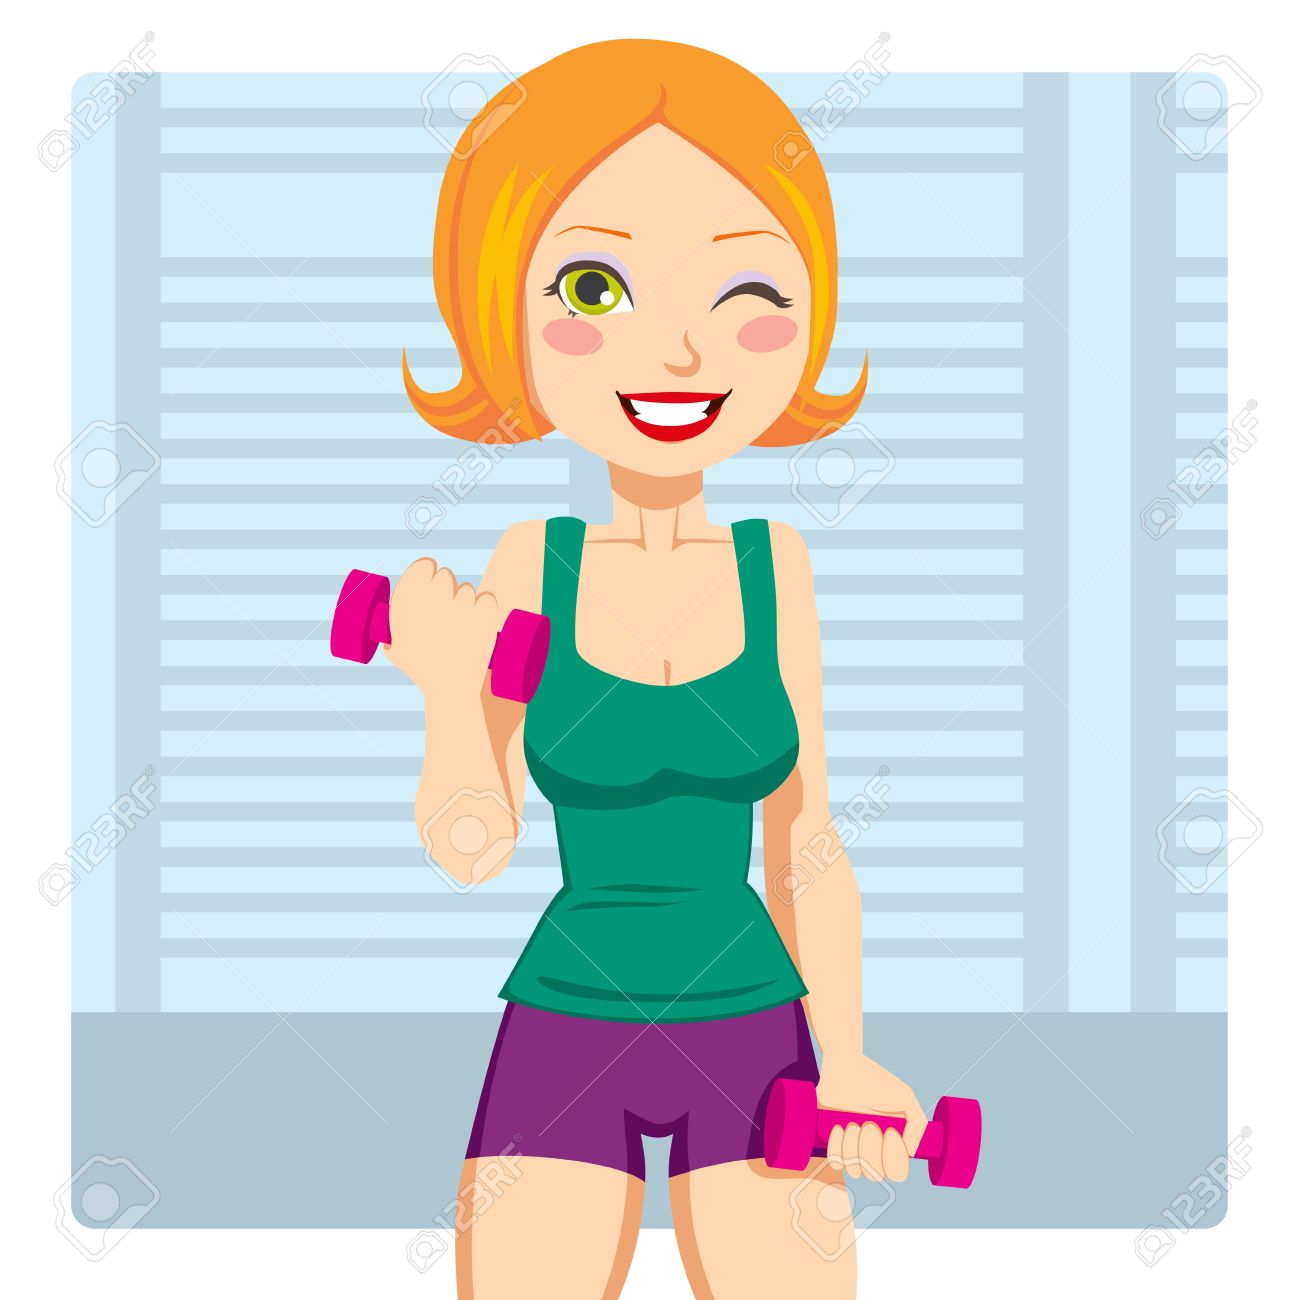 Free exercising cliparts download. Fitness girl clipart